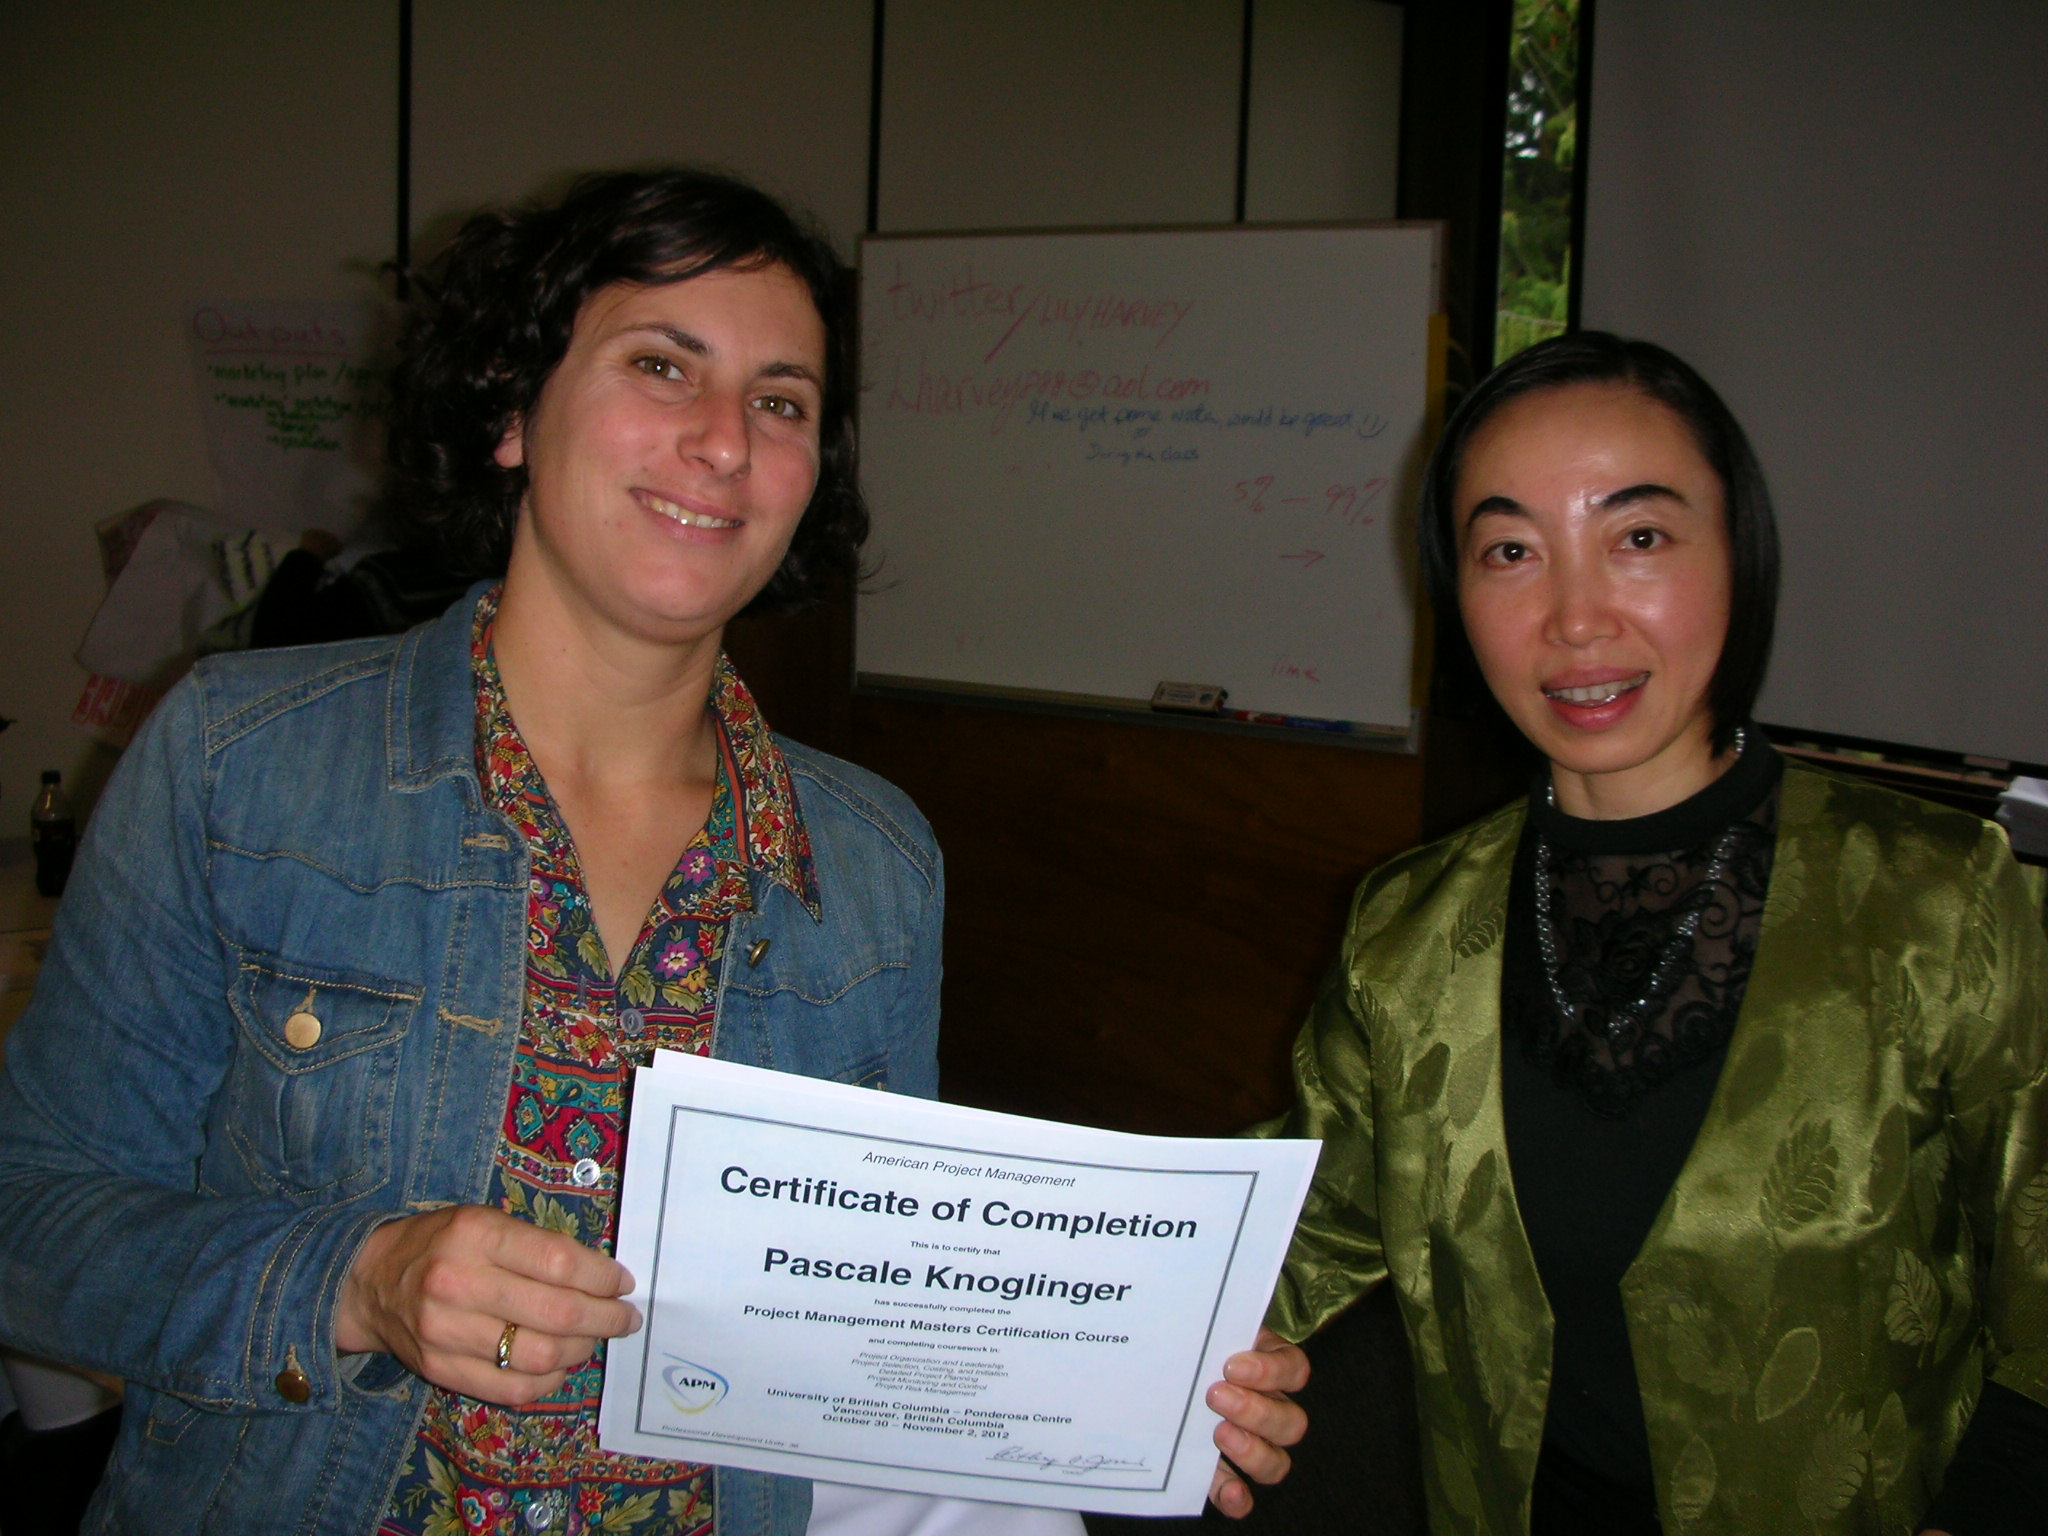 Instructor credential welcome to lily harveys coaching blog do your due diligence to verify on whom you are going to learn from link for verification by input instructors last and first name xflitez Image collections